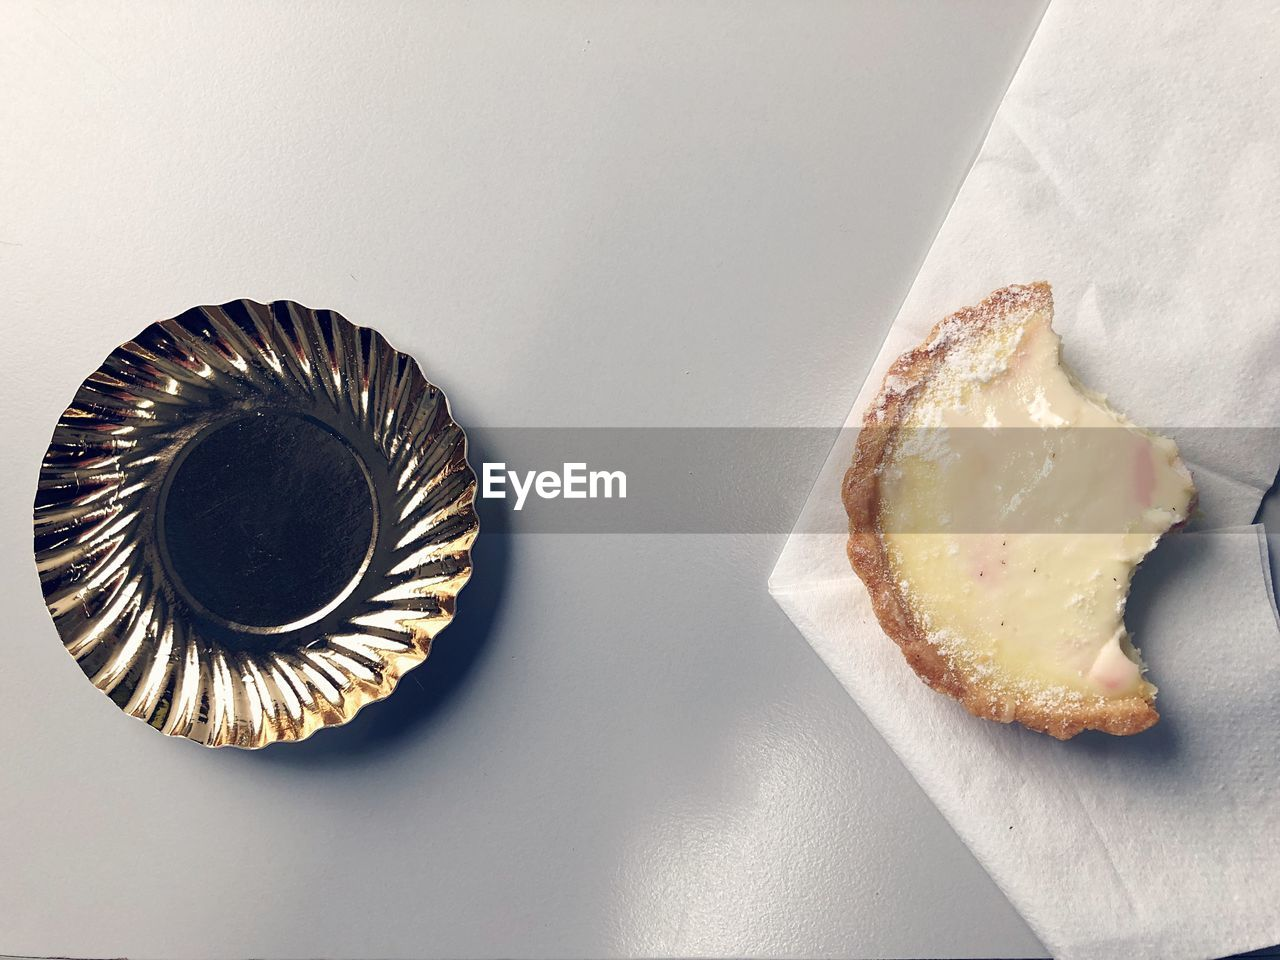 still life, indoors, no people, table, close-up, high angle view, food, food and drink, two objects, ready-to-eat, directly above, sweet food, freshness, paper, white background, baked, bread, unhealthy eating, plate, pattern, temptation, breakfast, snack